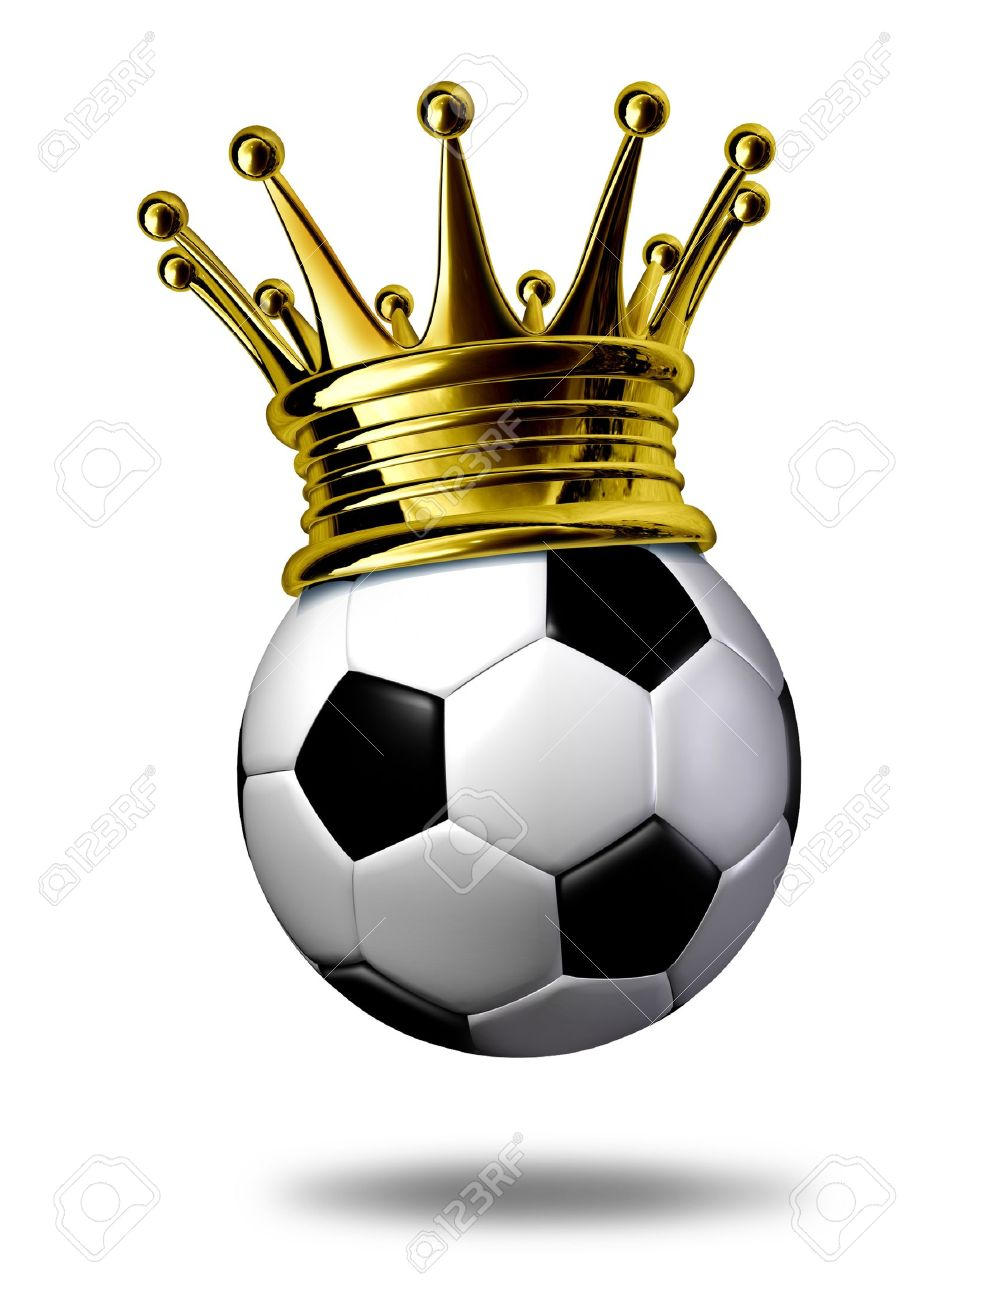 Soccer champion symbol represented by a golden crown on a black and white soccer ball or as called in Europe a football representing the winning of a tournament or game. Stock Photo - 10892107